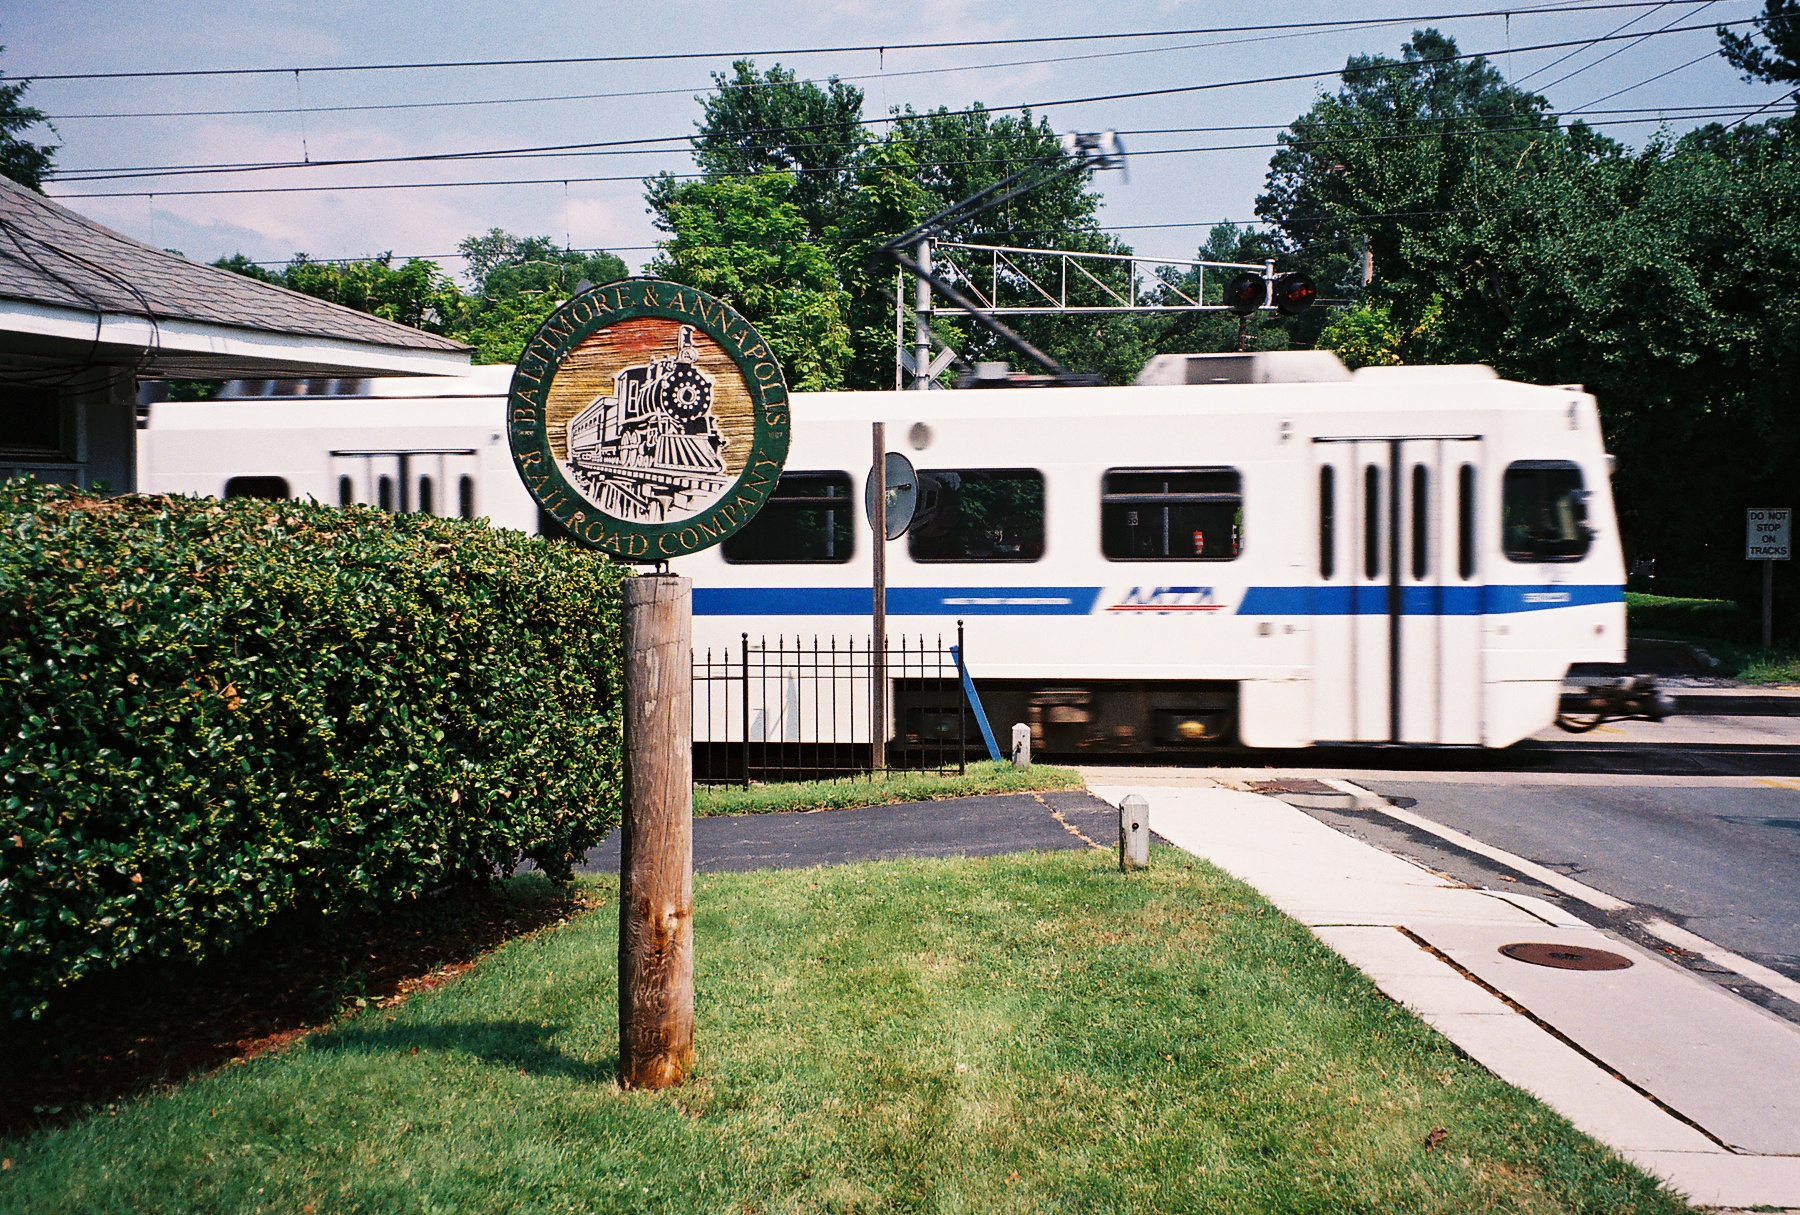 Baltimore and Annapolis Railroad